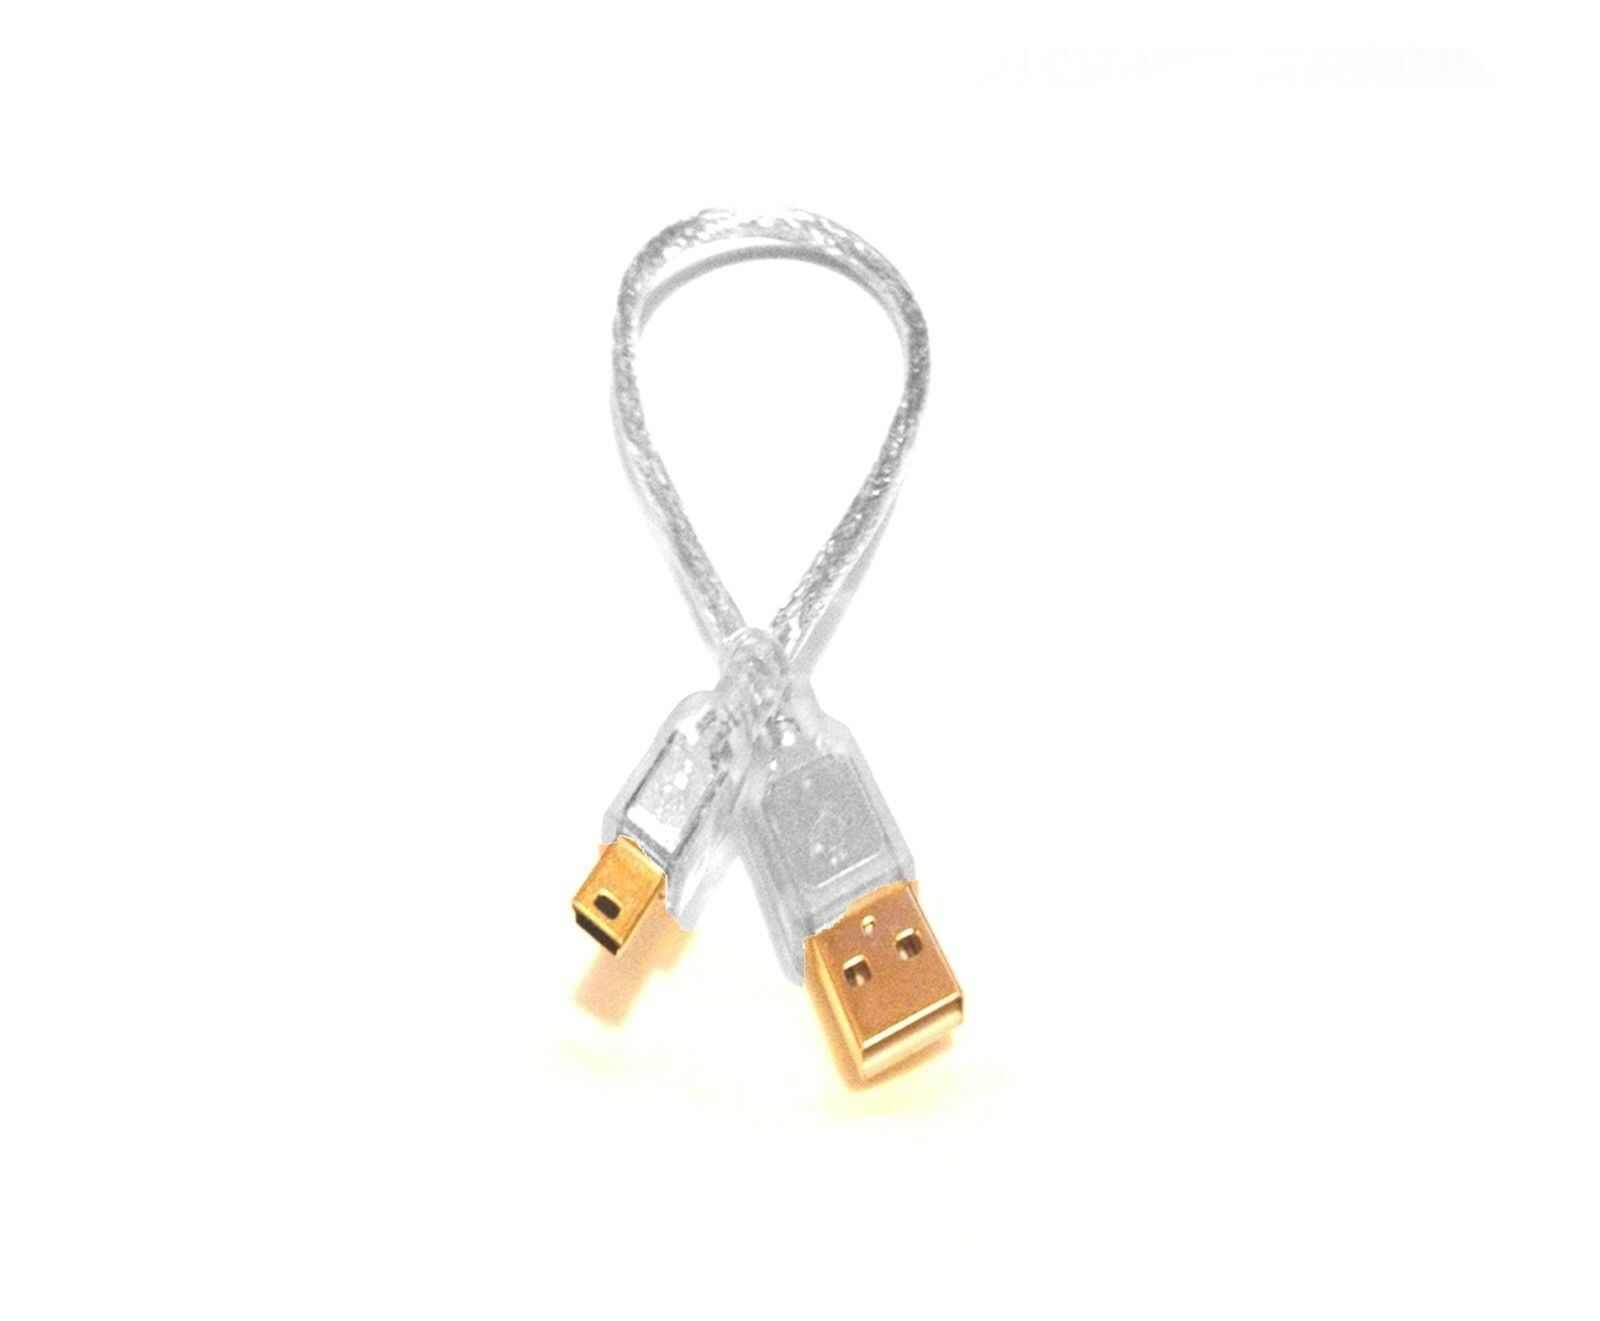 SB GOLD PLATED PREMIUM USB CABLE LEAD CHARGER FOR RIO CARBON MP3 PLAYER